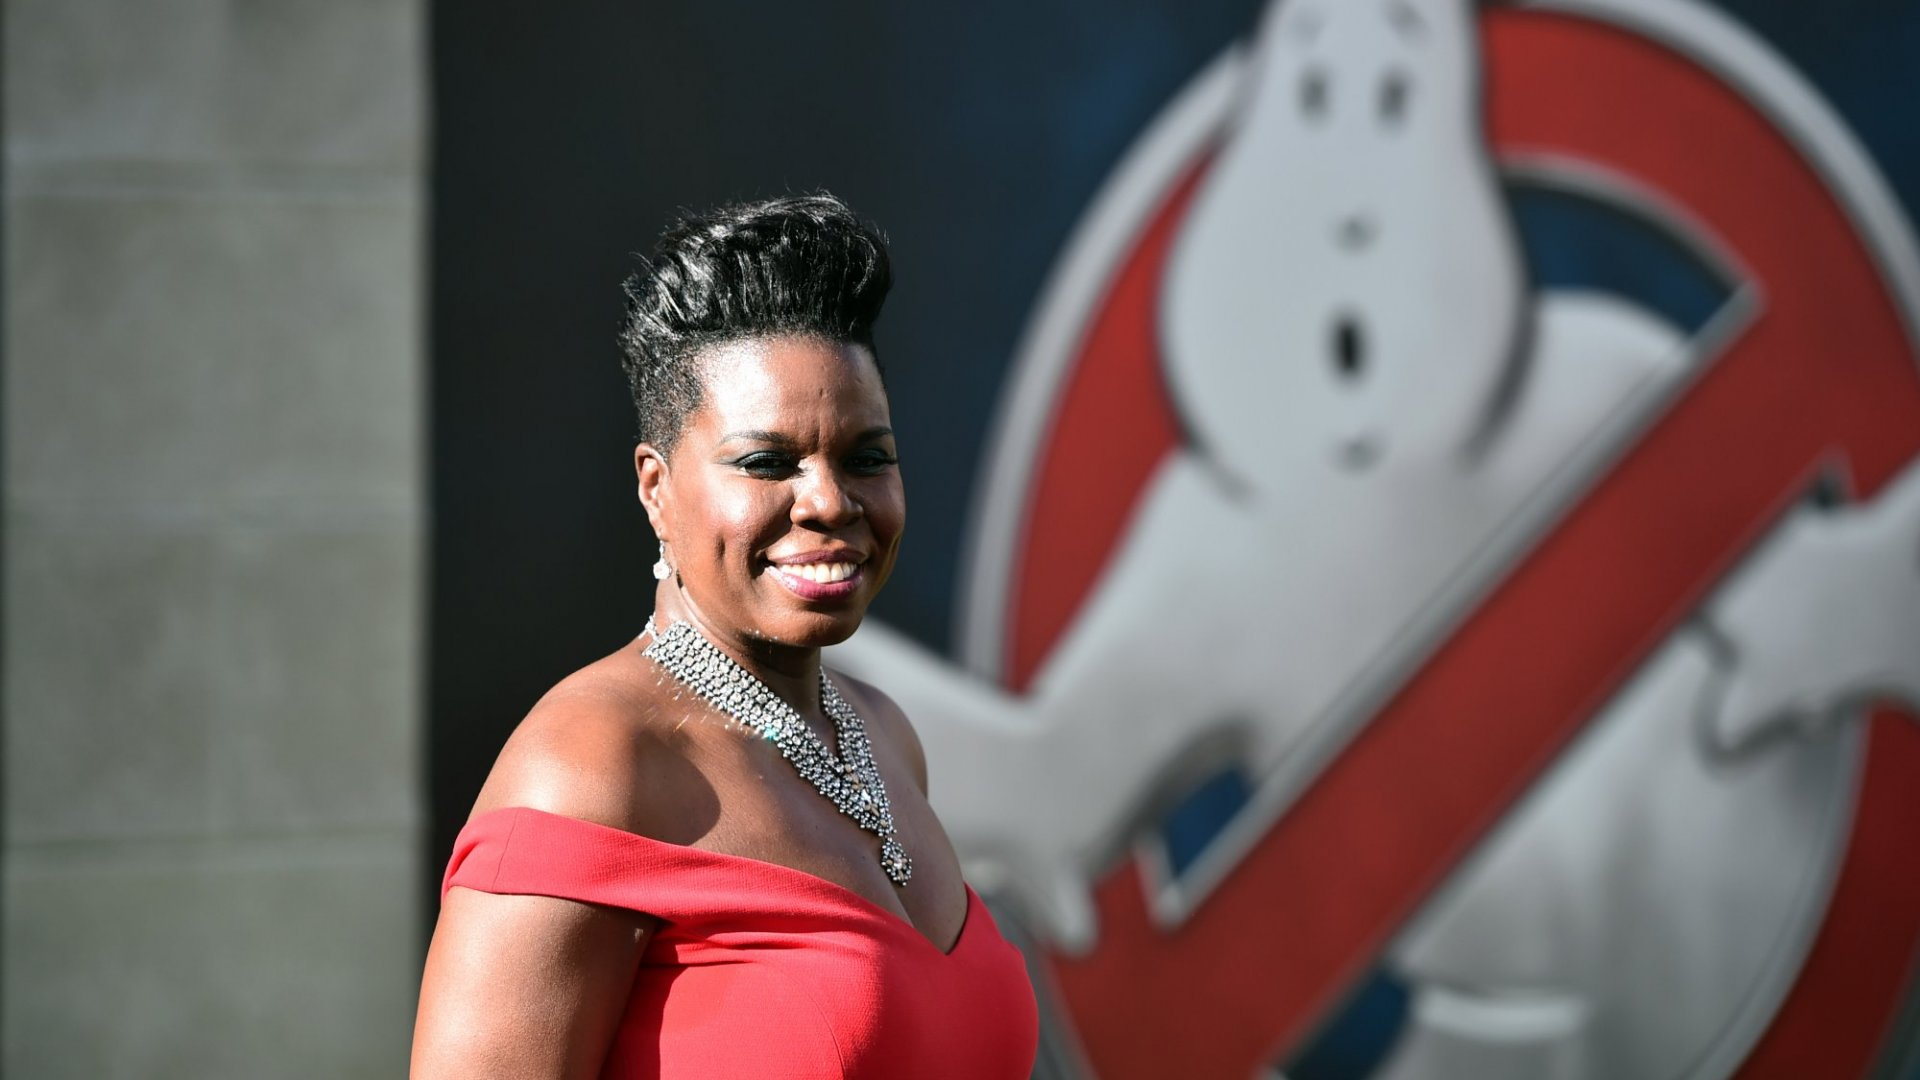 'Ghostbusters' Star Quits Twitter Over Abuse Despite Jack Dorsey's Personal Plea